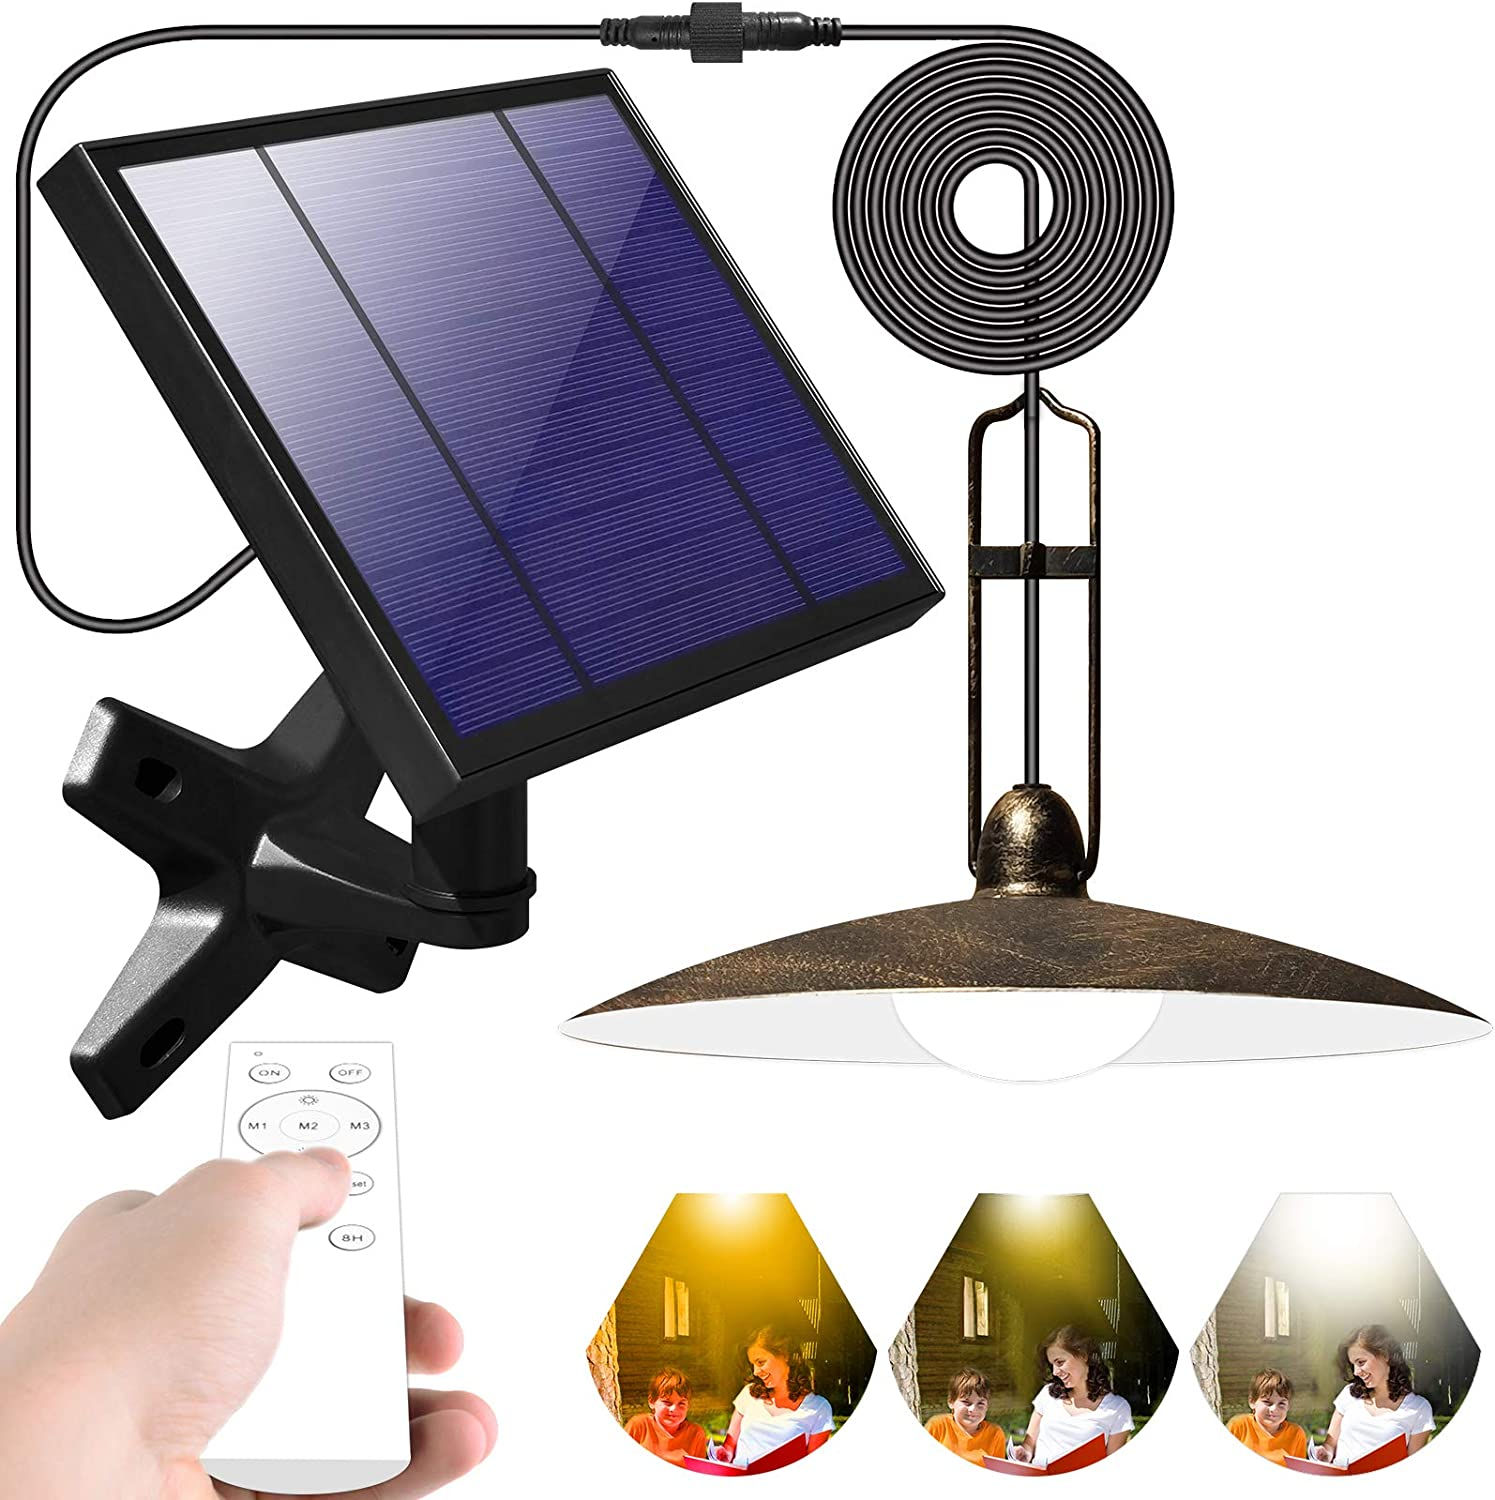 HITMODA Solar Pendant Lights Outdoor Upgrade Solar Shed Light with Wall Through Remote Control 16.4Ft Cord IP65 Waterproof Hanging for Indoor Garden Gazebo Patio Yard Porch Balcony Storage Room Coop